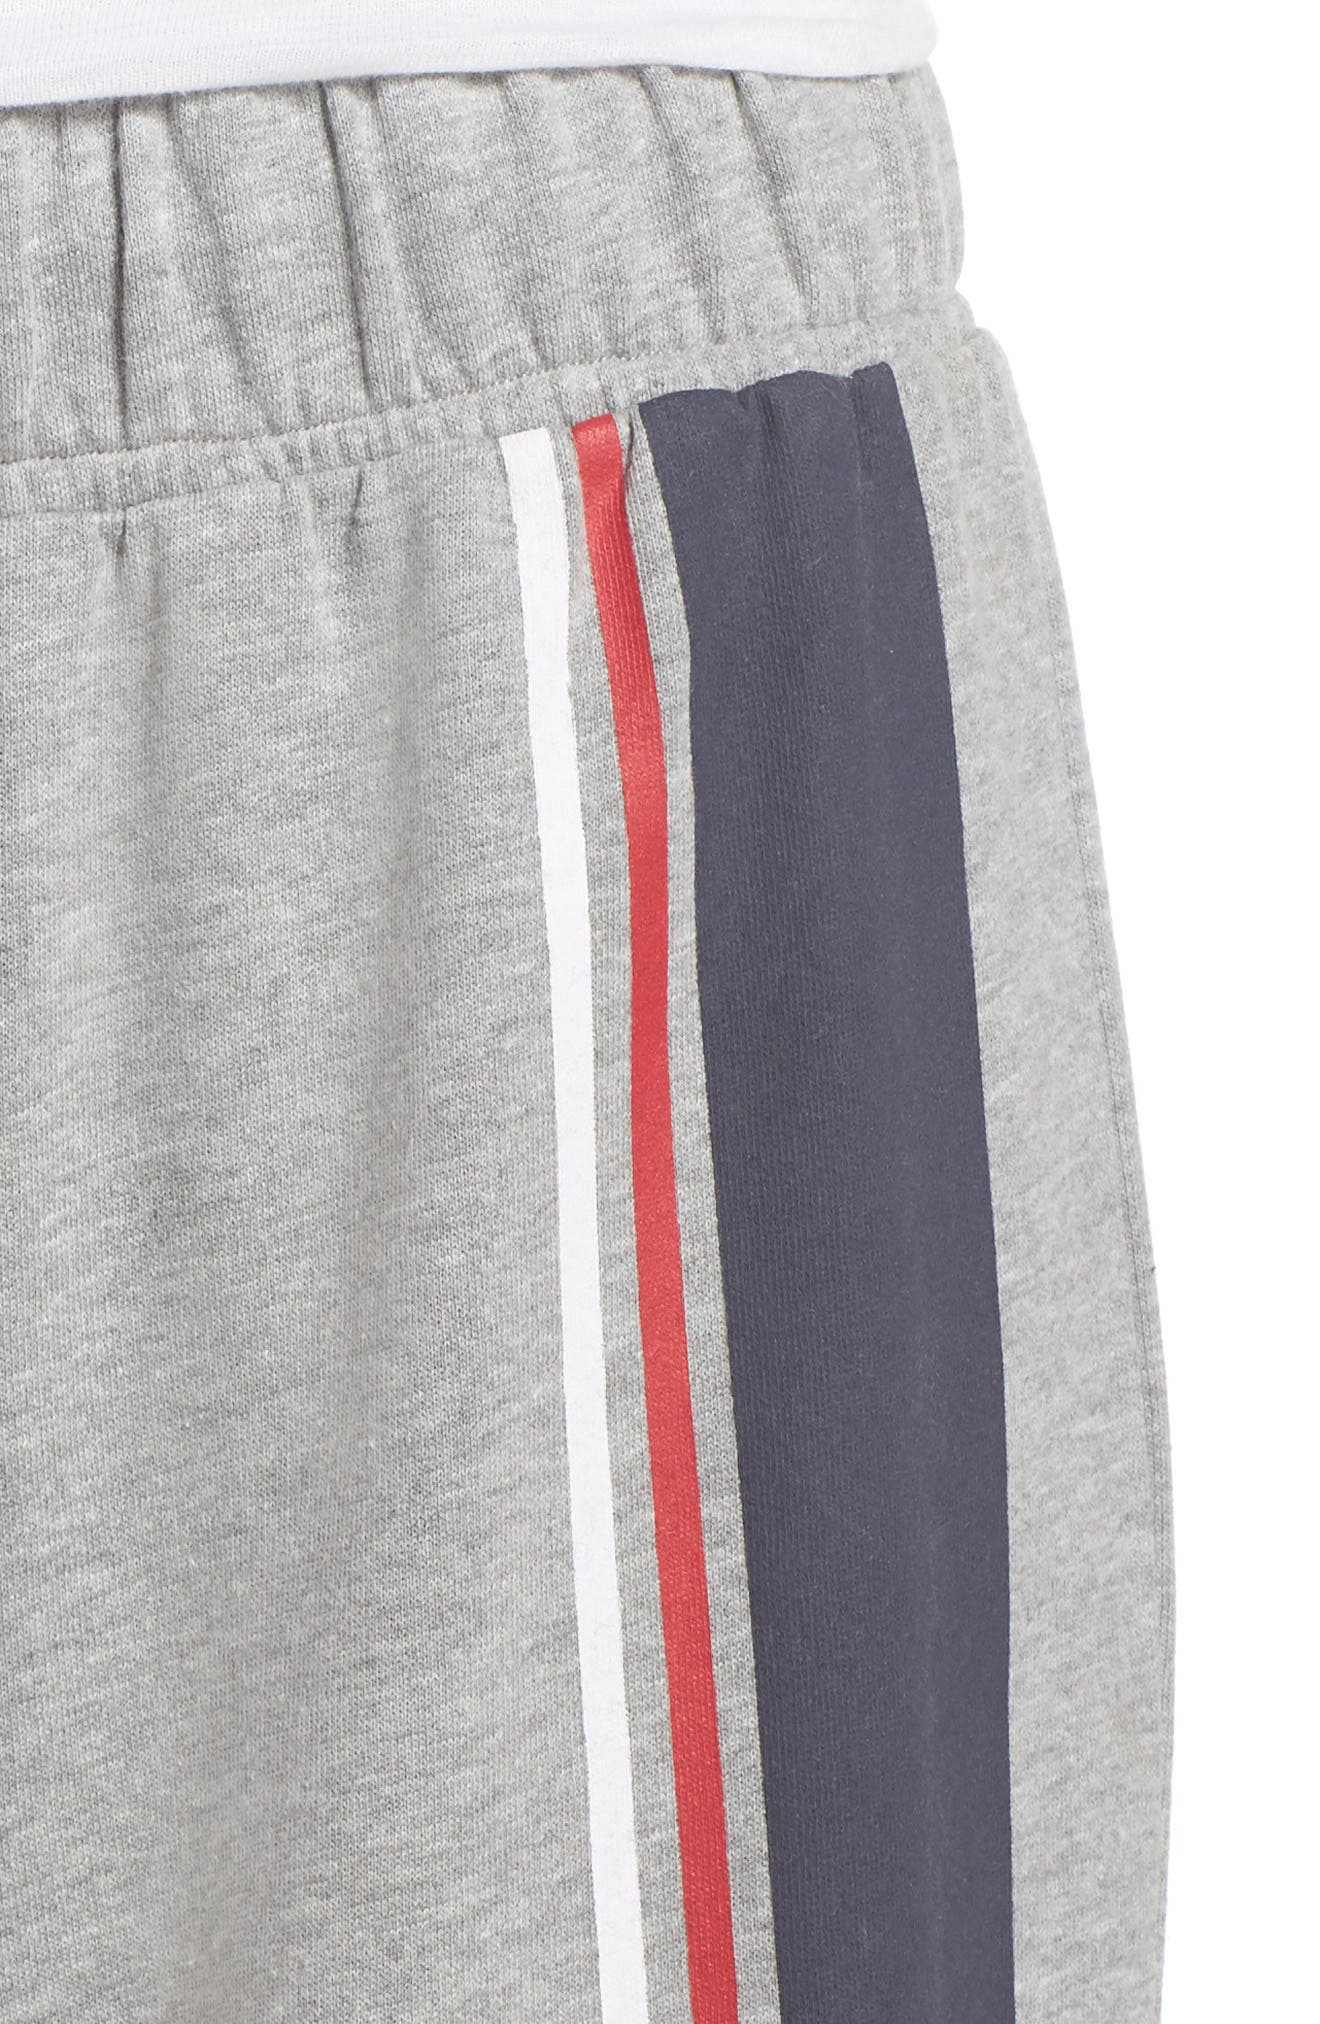 Stripe Lounge Pants,                             Alternate thumbnail 4, color,                             023